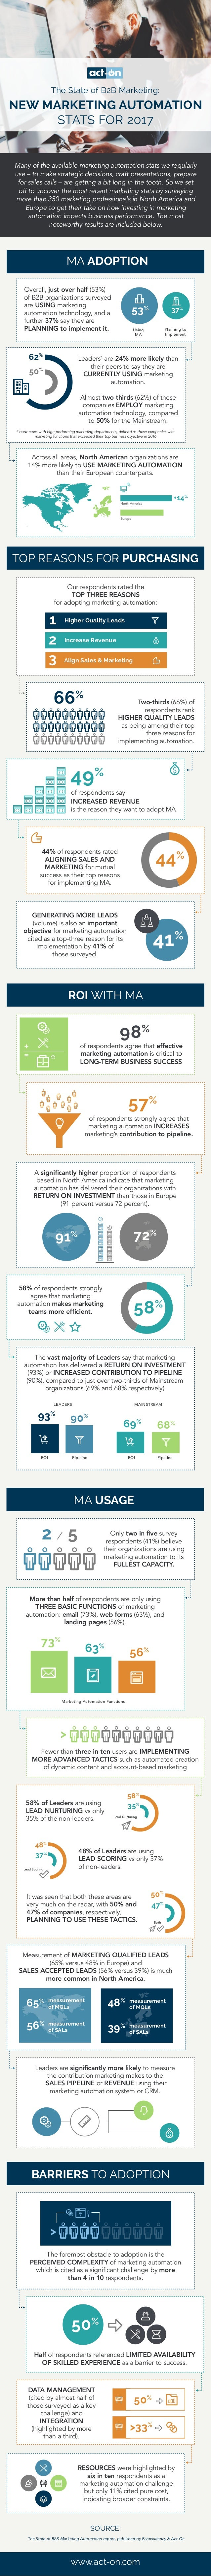 NEW MARKETING AUTOMATION STATS FOR 2017 Overall, just over half (53%) of B2B organizations surveyed are USING marketing au...